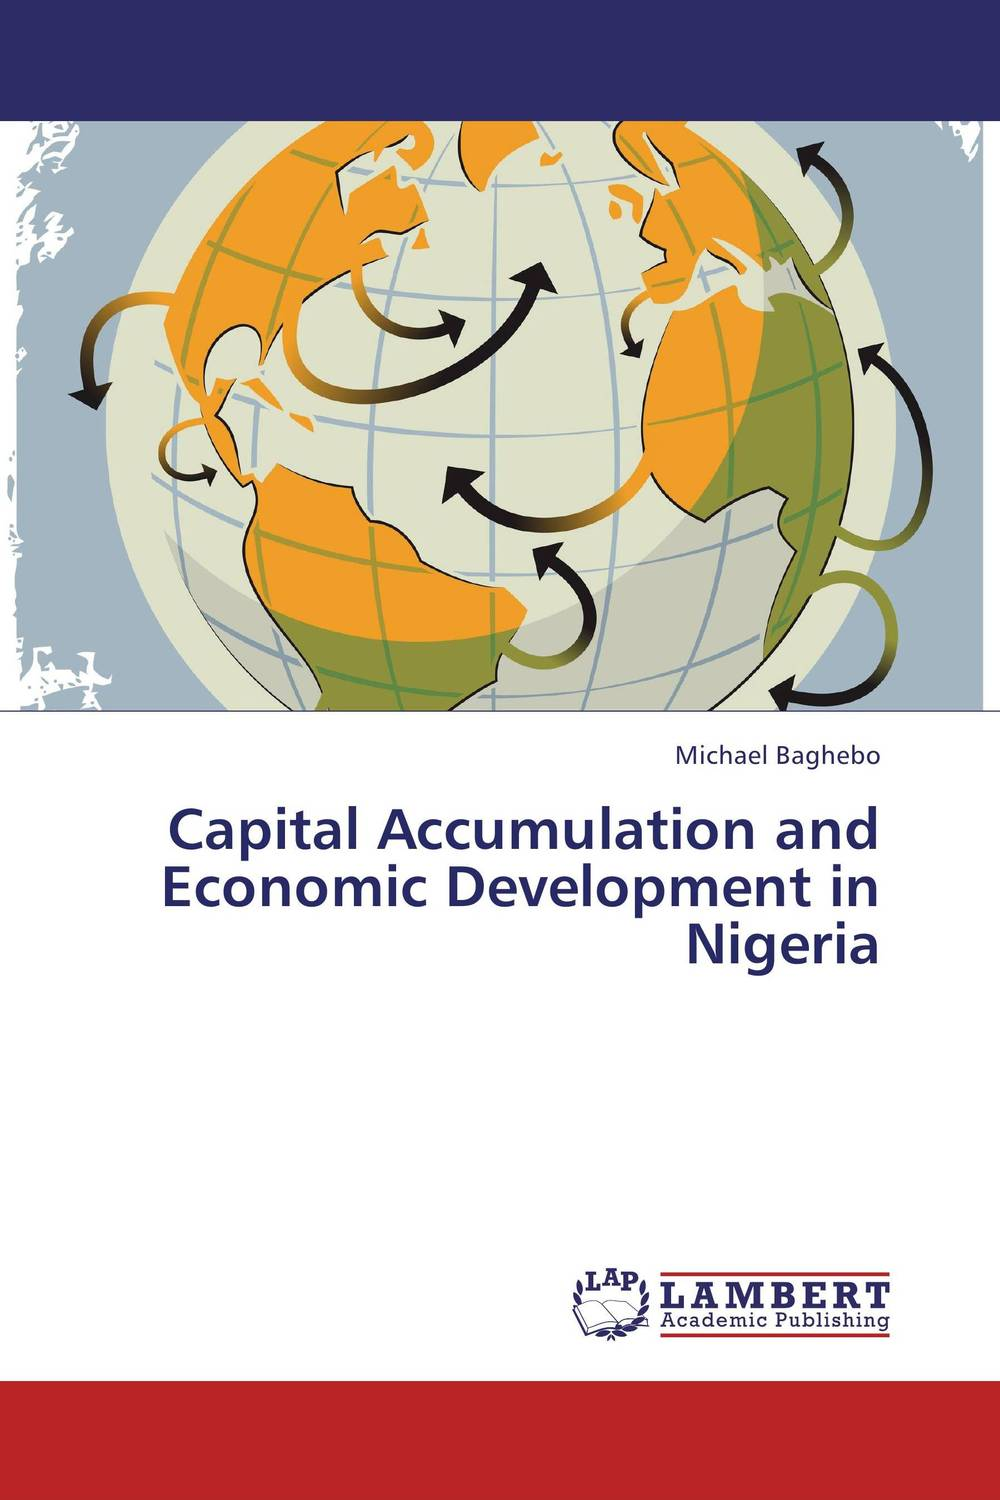 Capital Accumulation and Economic Development in Nigeria xeltek private seat tqfp64 ta050 b006 burning test